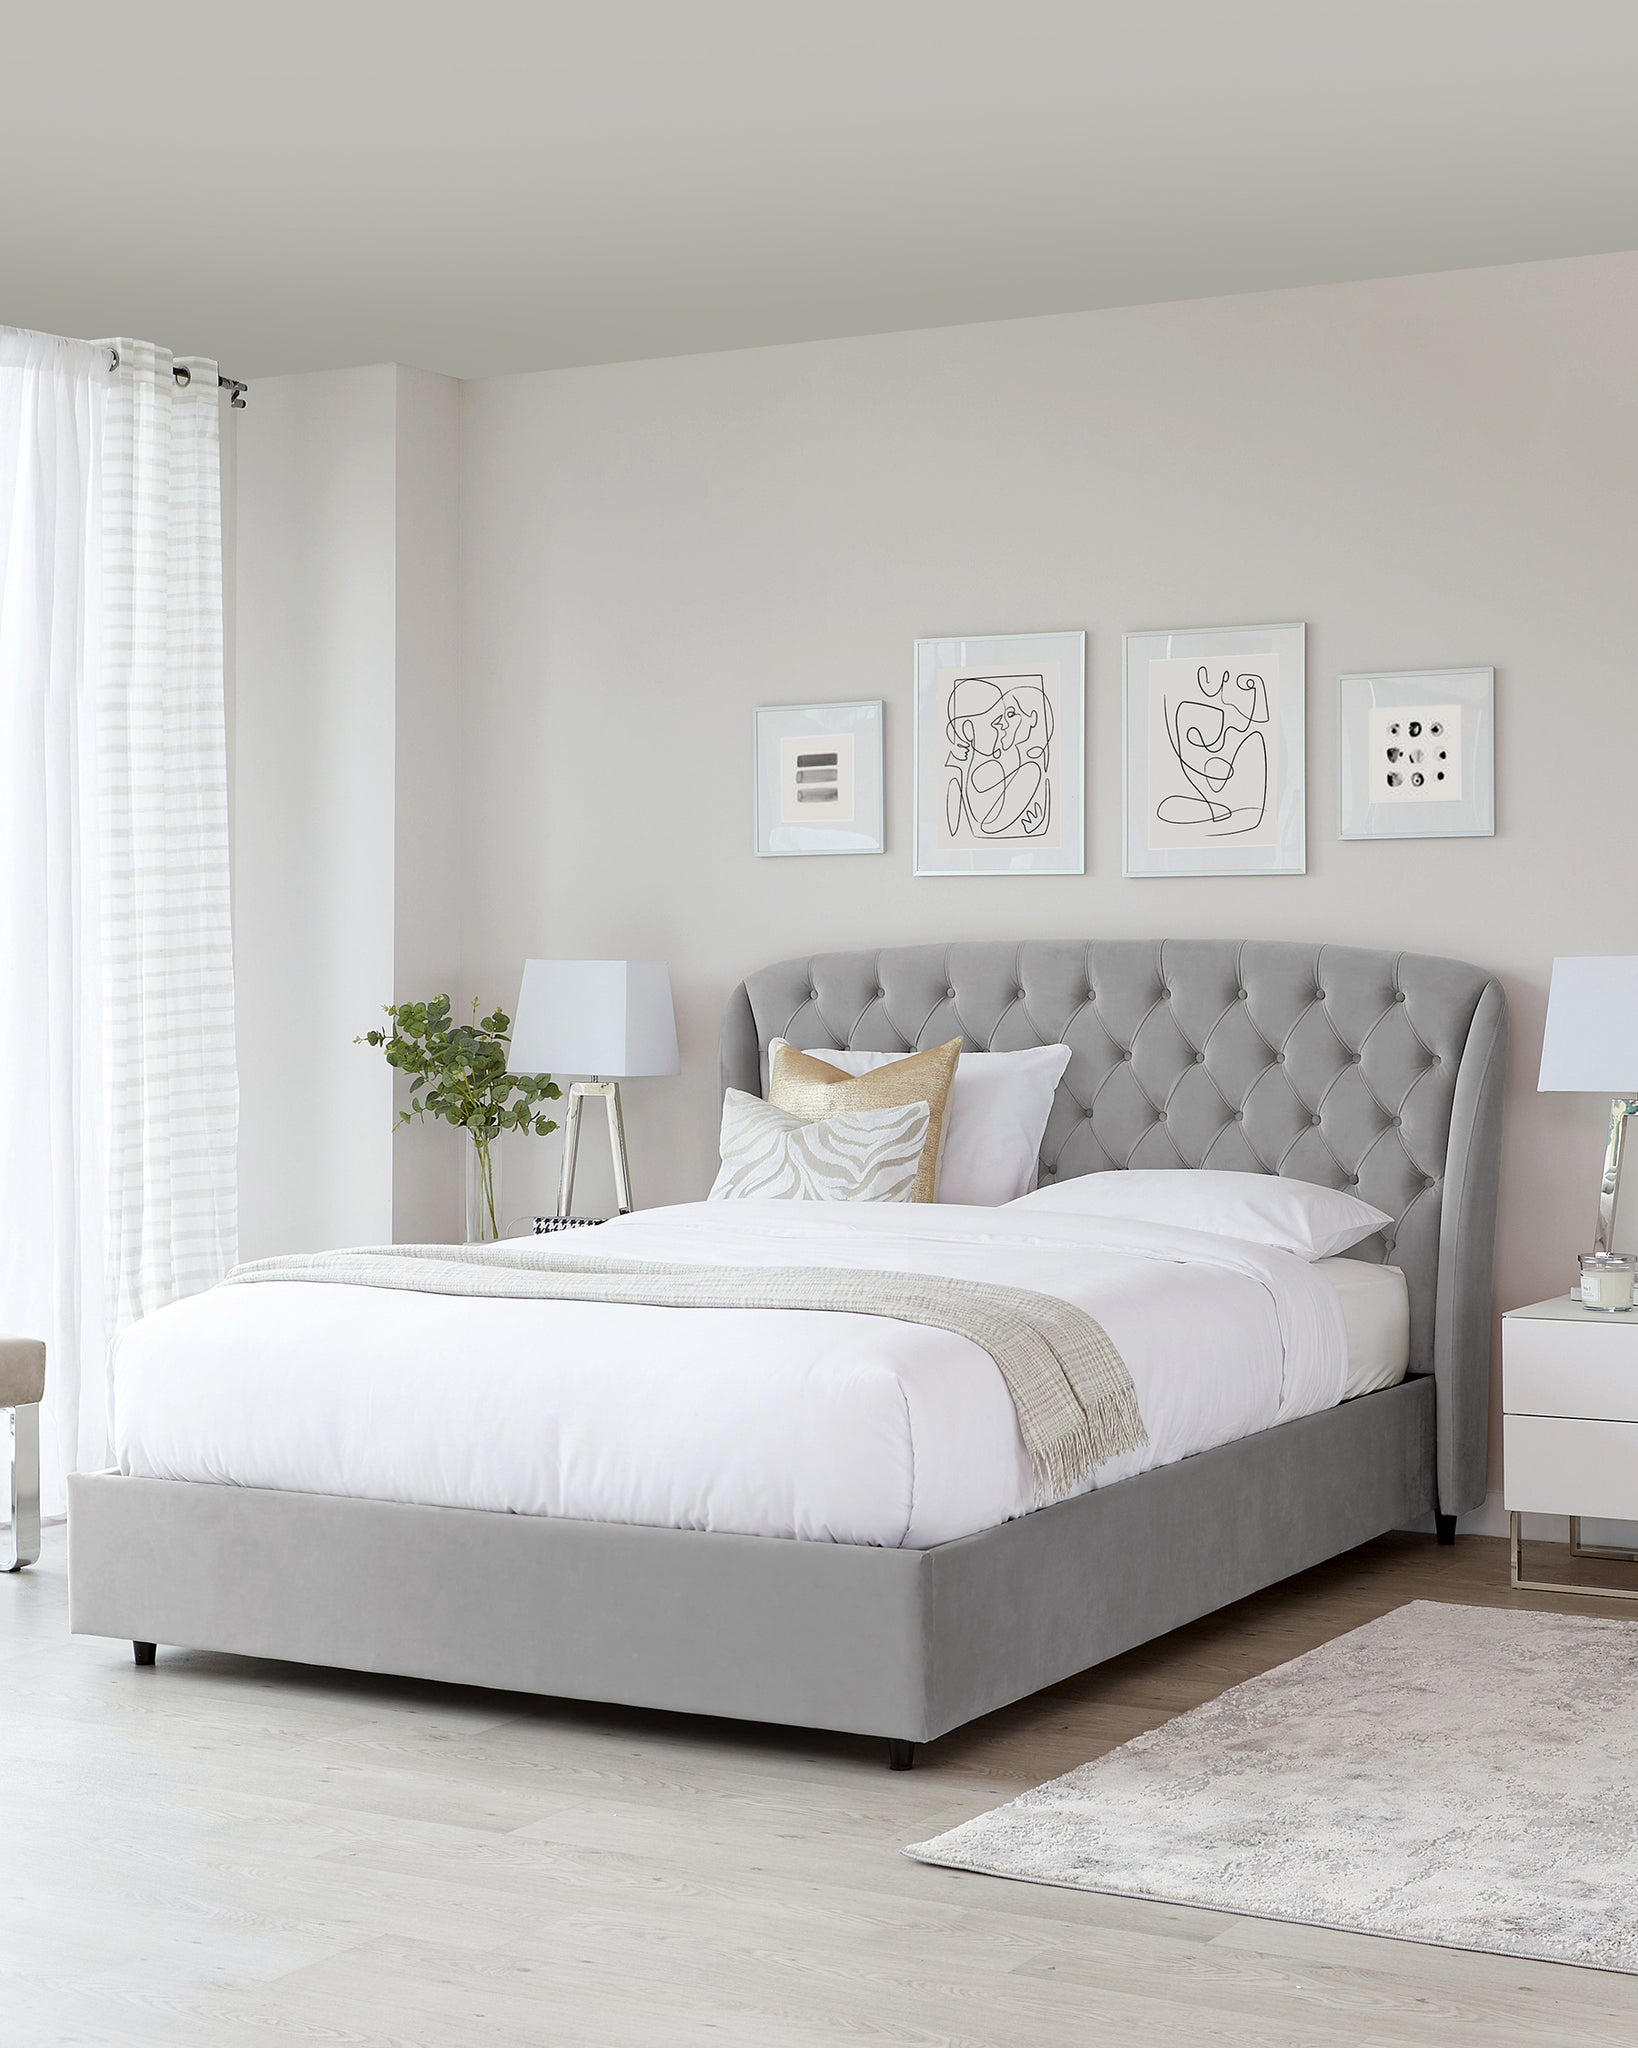 Manolo Light Grey Velvet Super King Size Bed With Storage